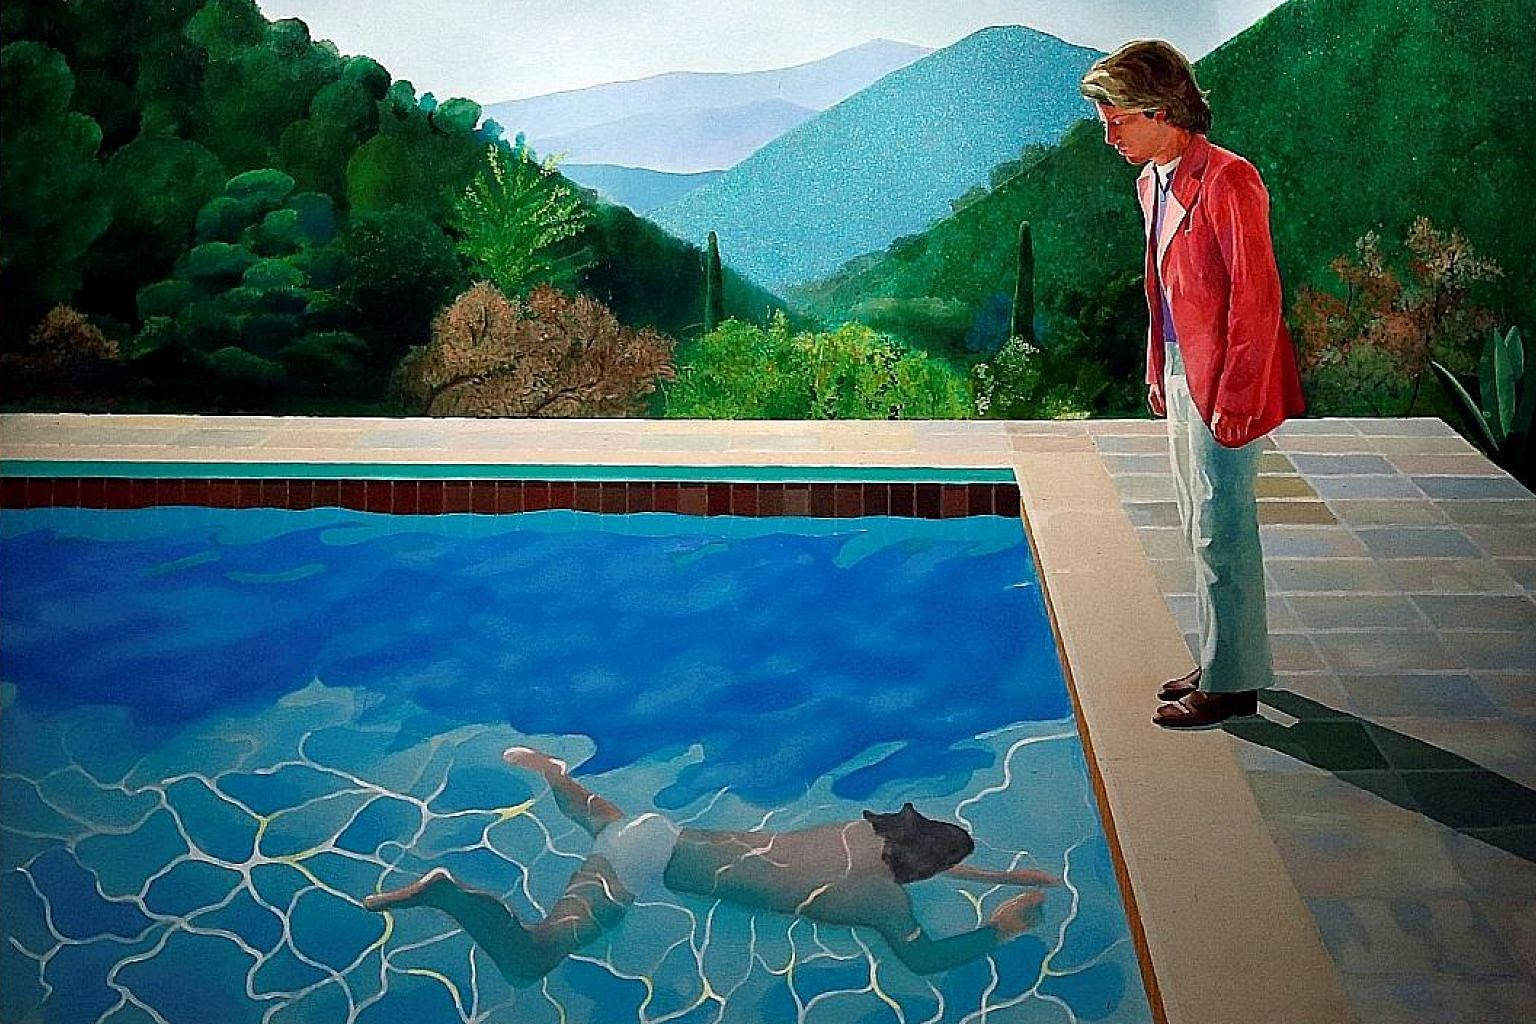 David Hockney's Portrait Of An Artist (Pool With Two Figures) was sold at auction earlier this month for more than $124 million, making him the living artist with the most expensive work sold at auction.